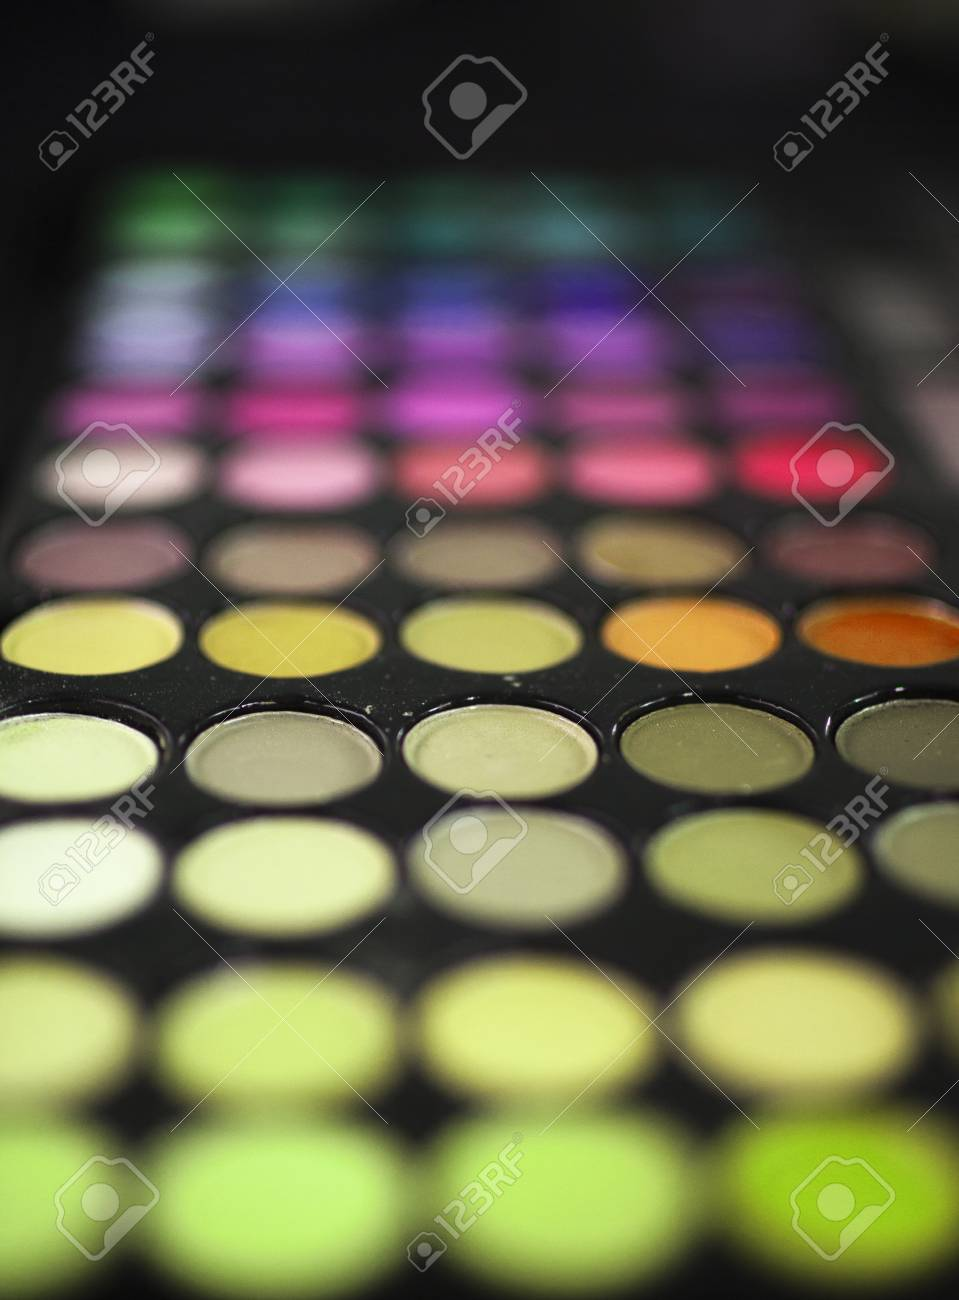 Professional Make Up Colors Mascara Shades Palette On Neutral